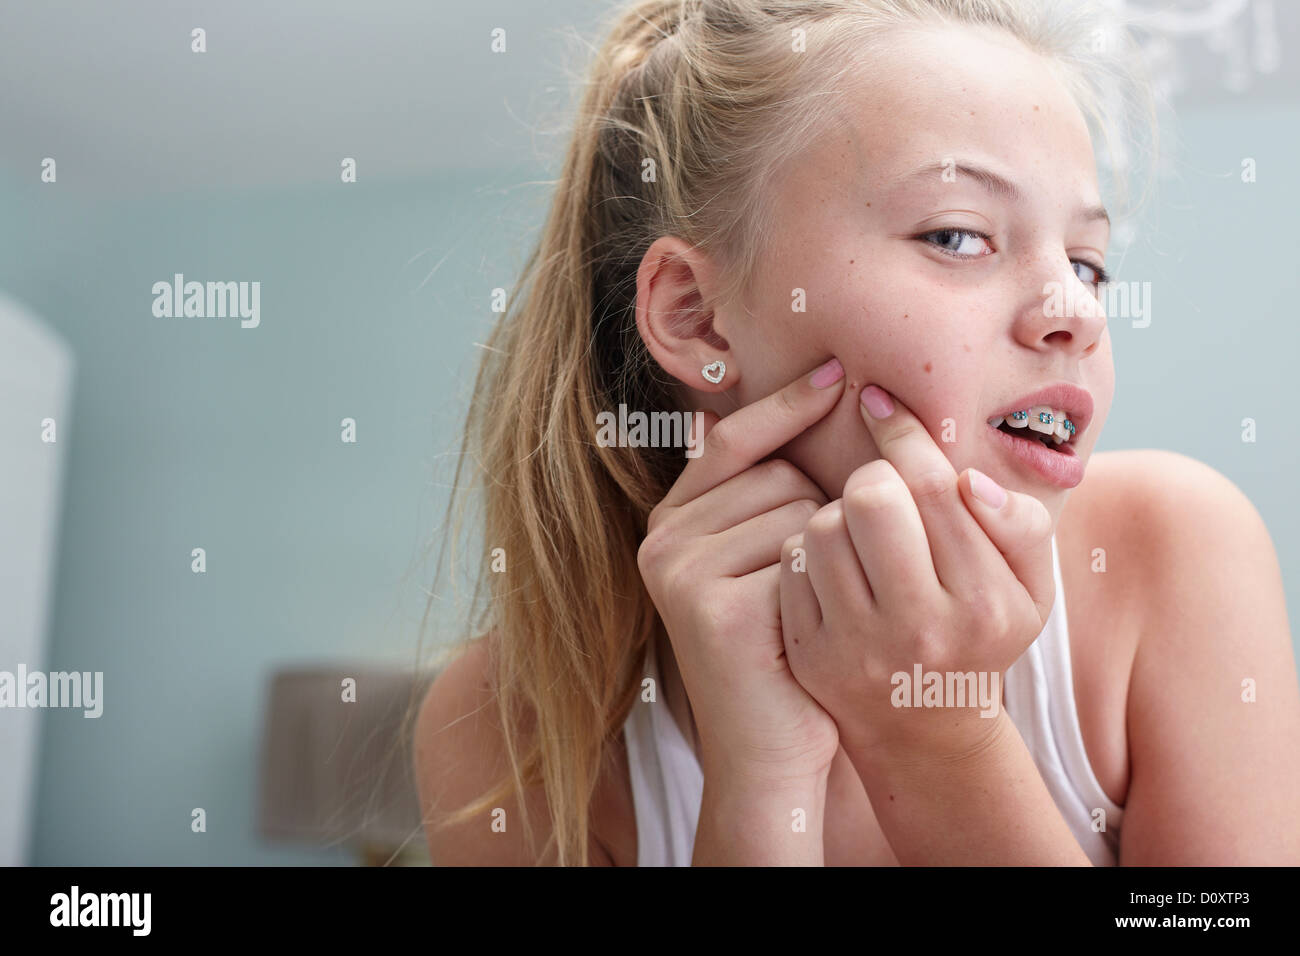 Teenage girl squeezing a spot - Stock Image